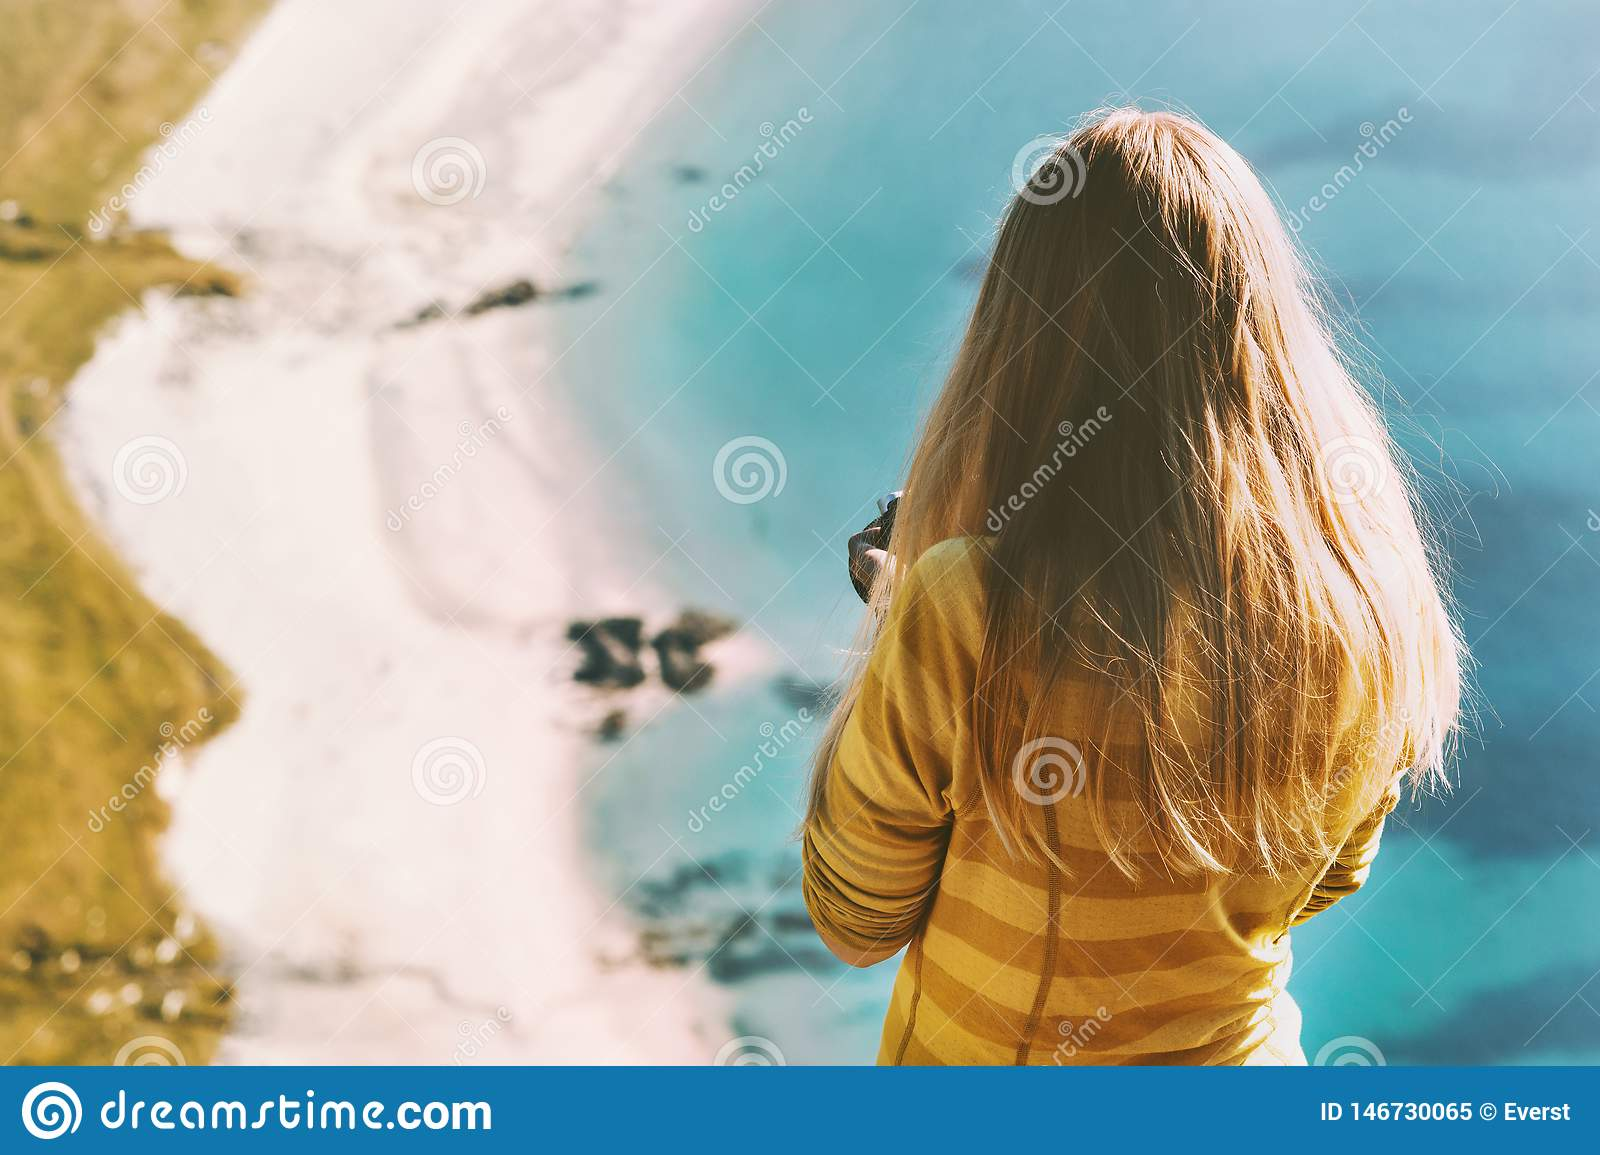 Travel vacations woman tourist standing above ocean